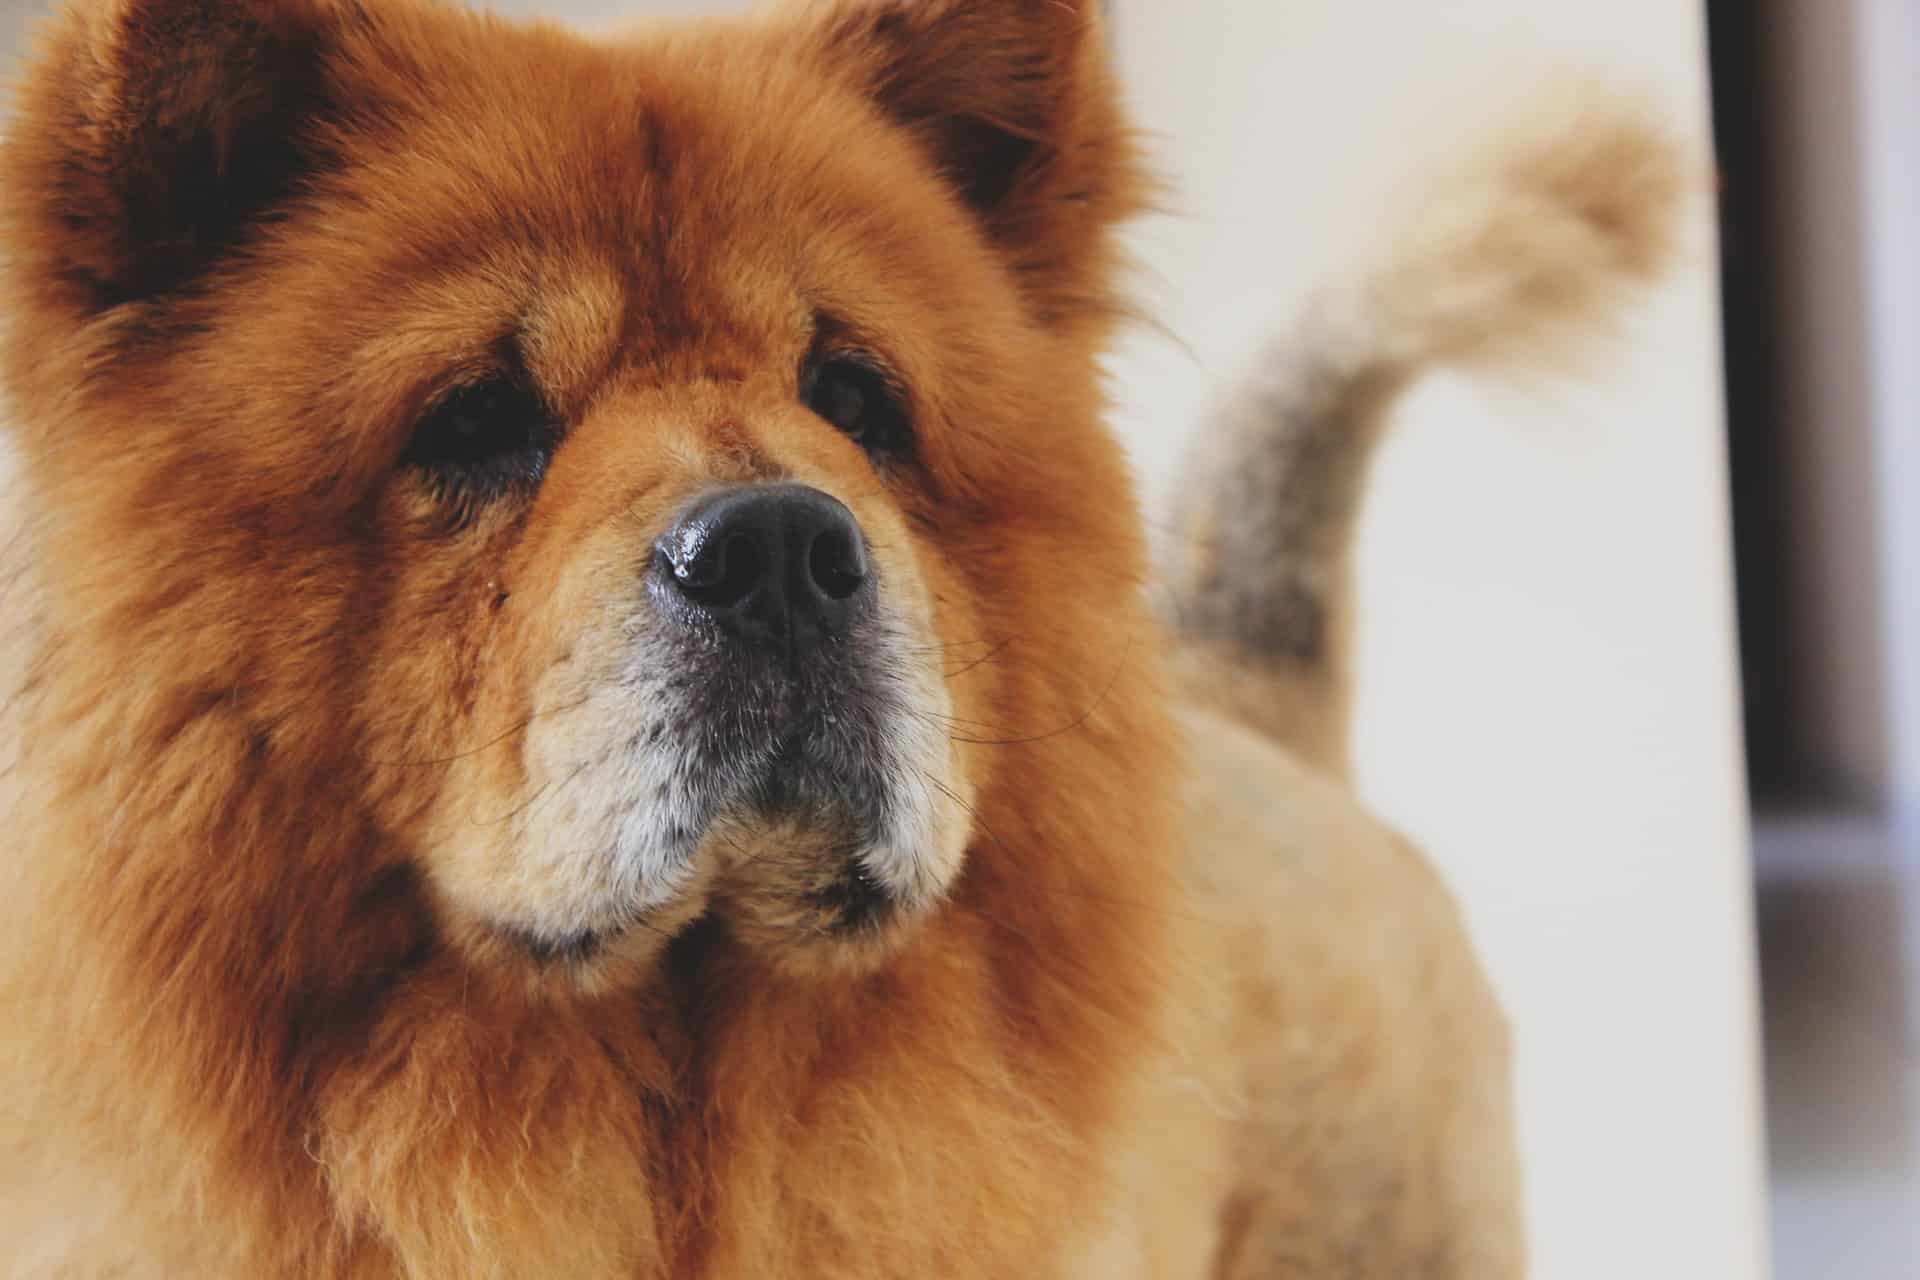 Dog That Looks Like A Lion: The Top 7 Lion-Like Dogs